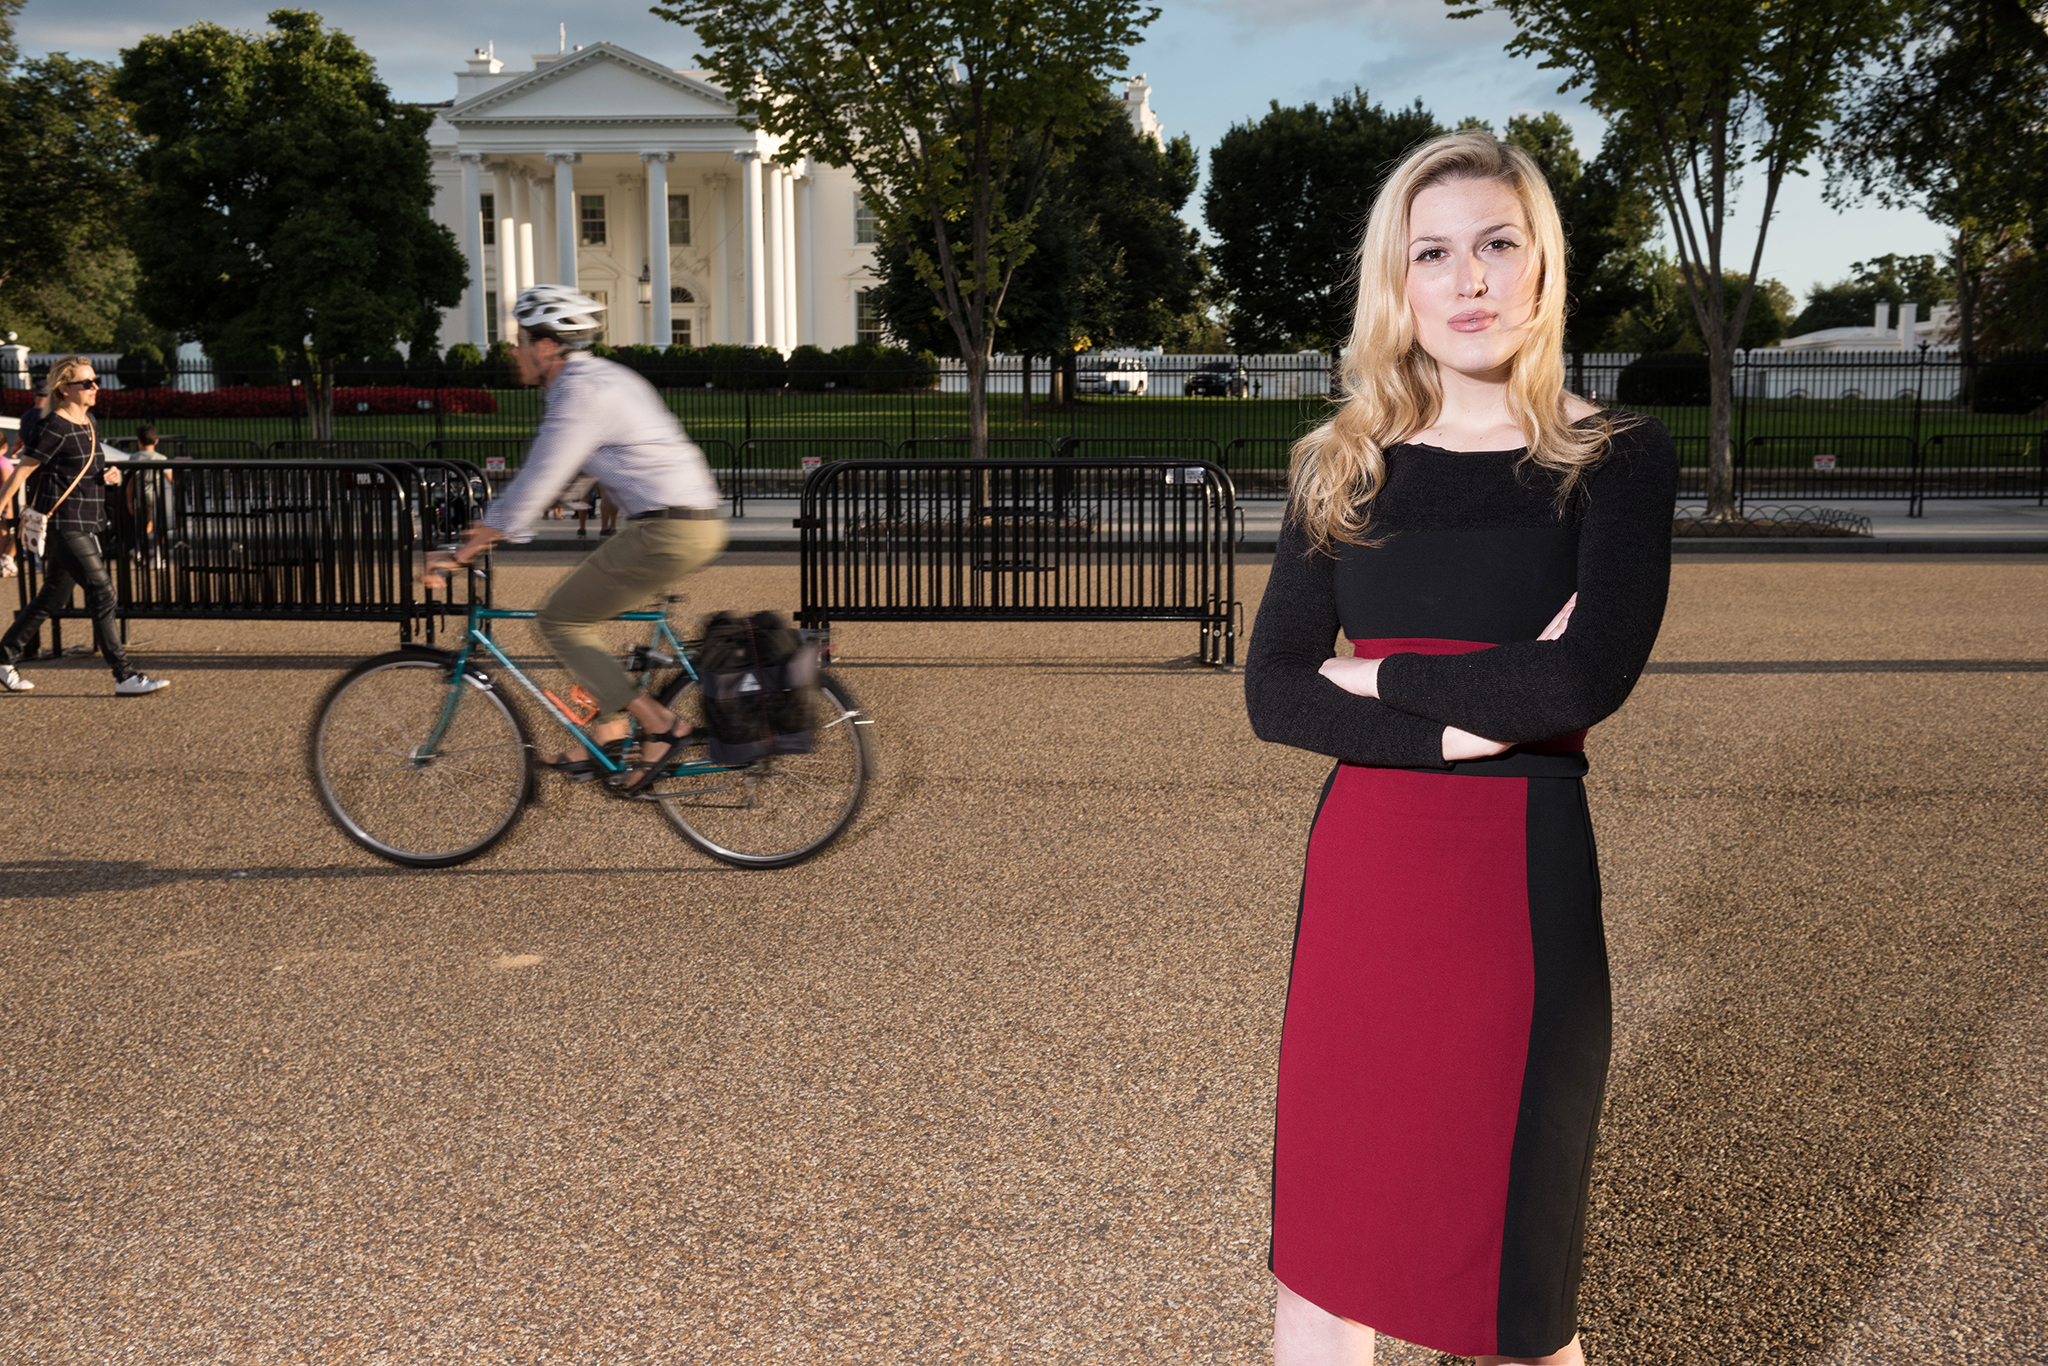 WASHINGTON, DC - SEPTEMBER 15: Olivia Nuzzi, Washington Correspondent for New York Magazine, stands for a portrait near the White House on Sept. 15, 2017 in Washington, D.C. (Photo by Joshua Yospyn/For Women's Wear Daily)